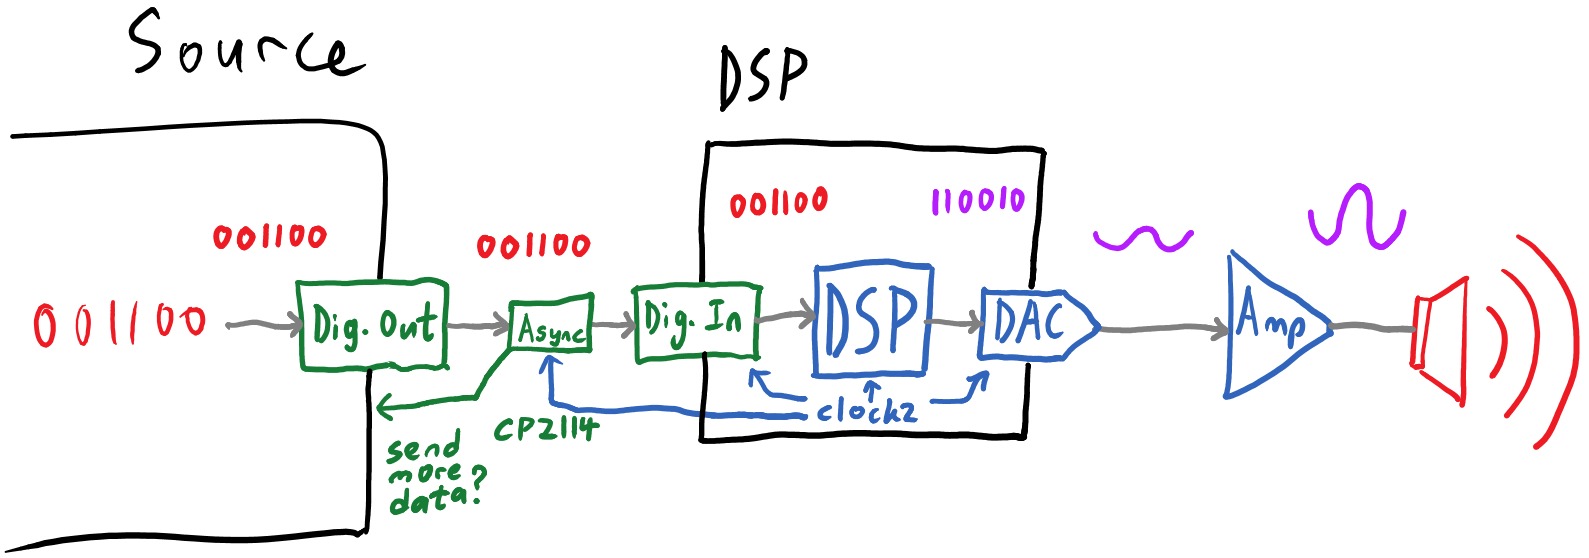 Dsp 01 Hi Fi Audio Signal Processor Circuit The Cp2114 Is An Asynchronous Usb Device This Means A Few Things